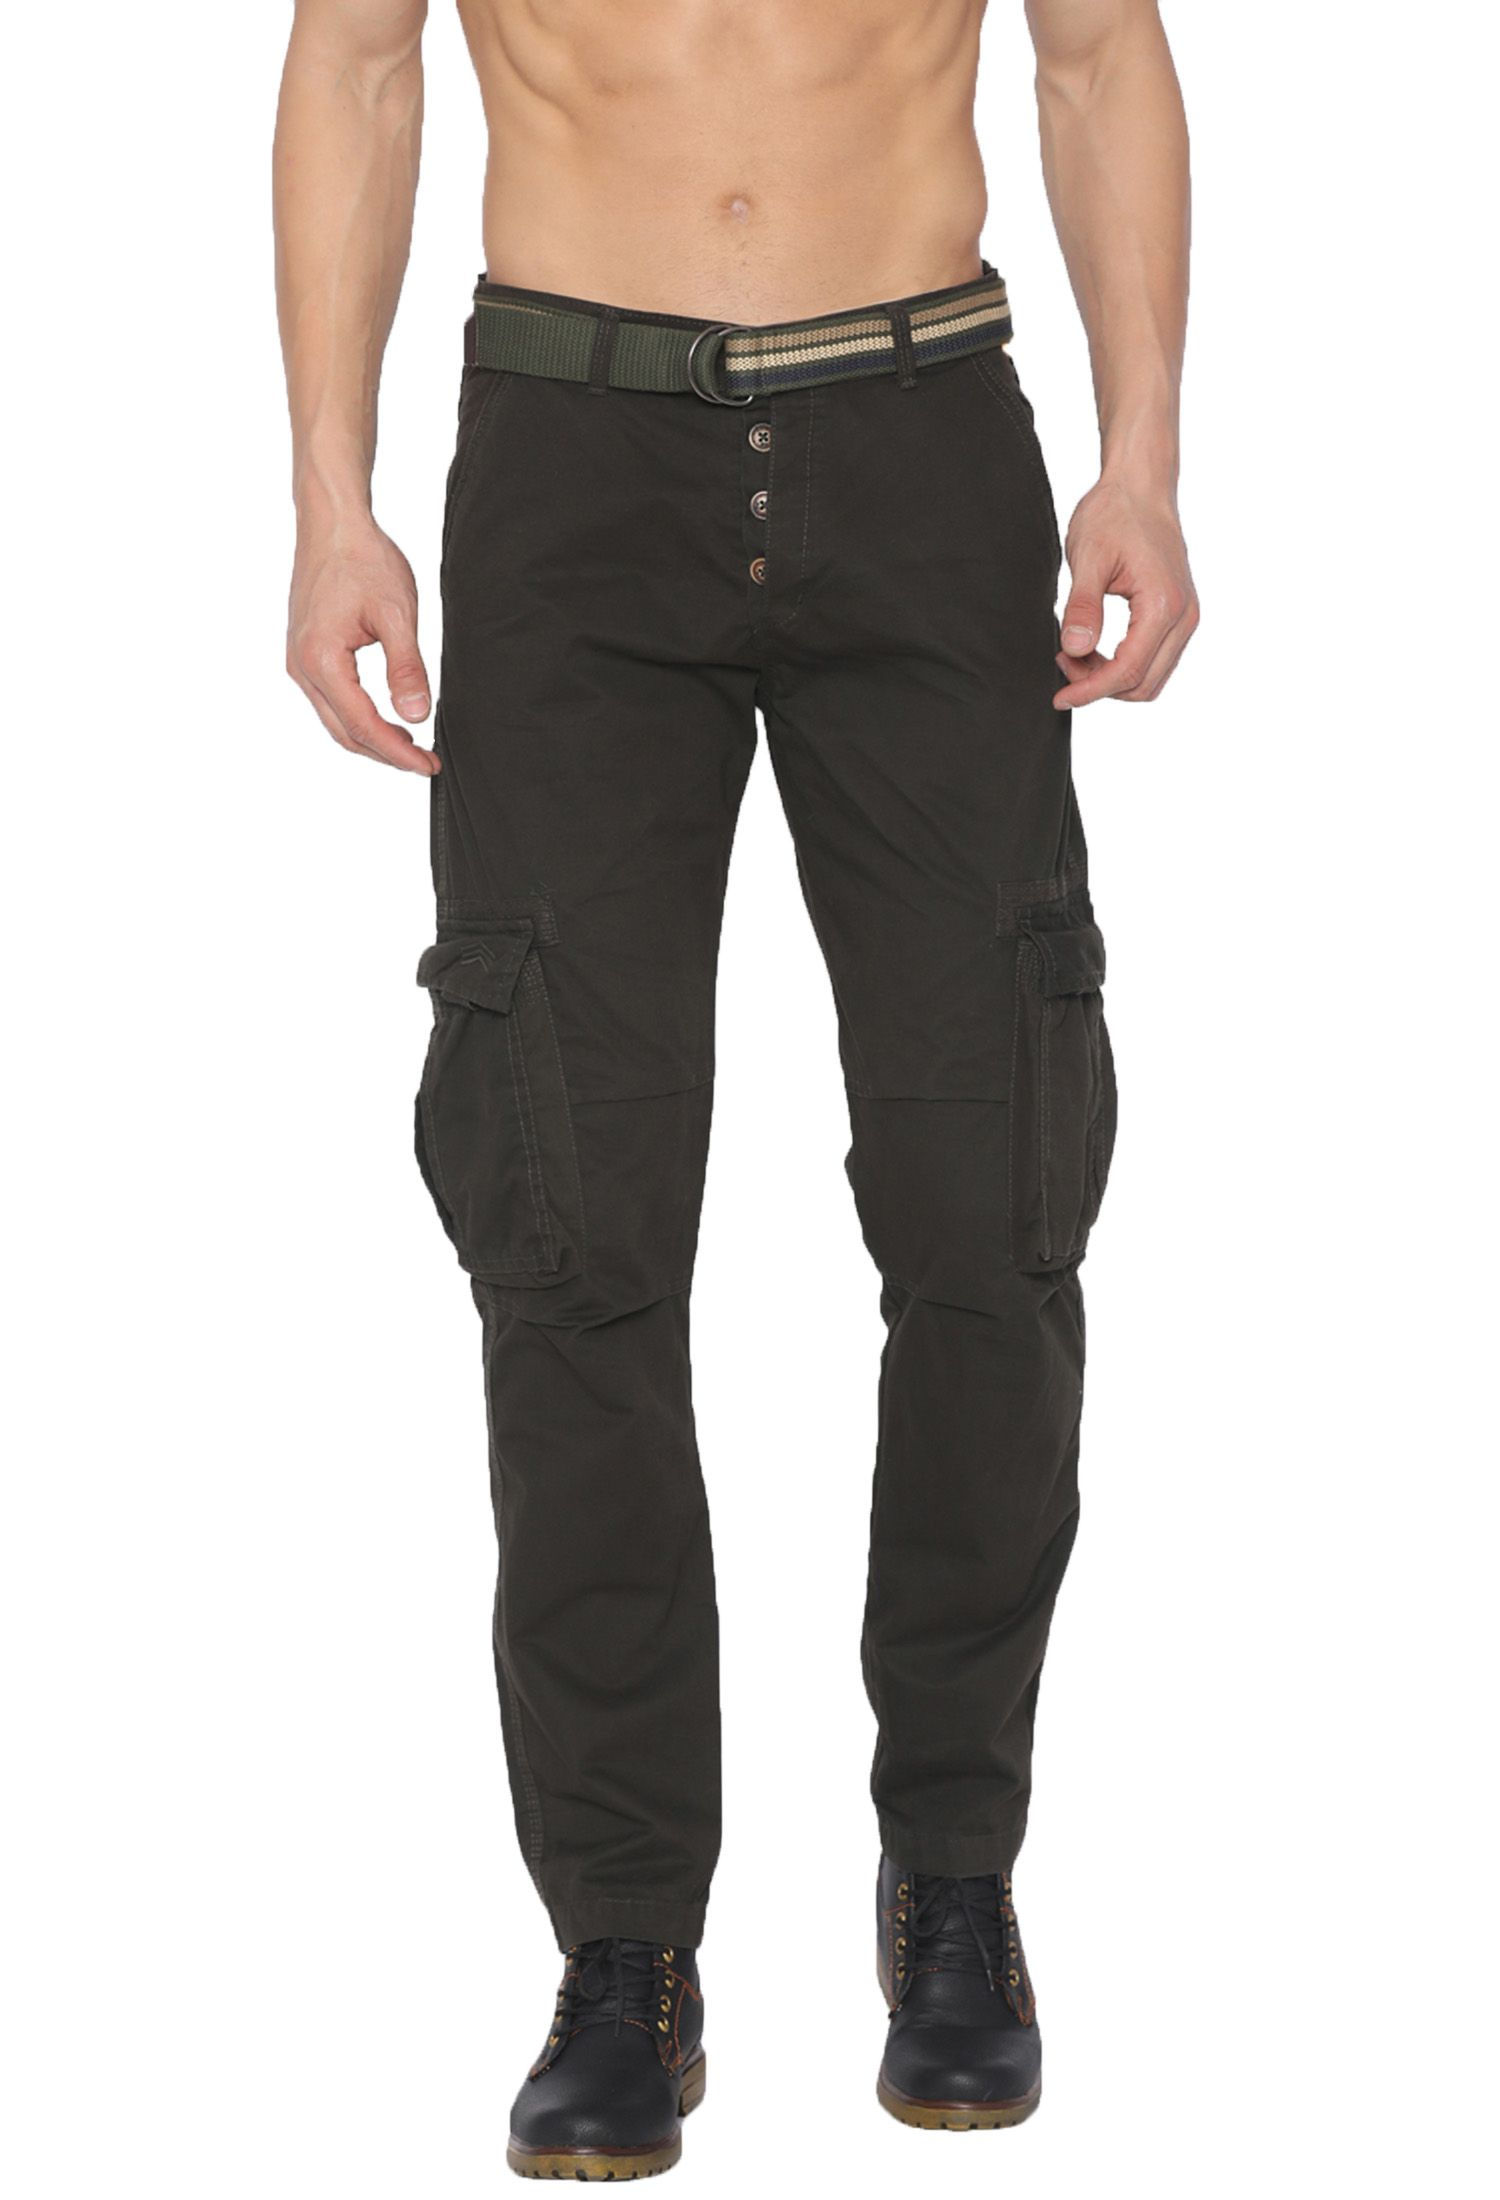 FIFTY TWO Green Regular -Fit Flat Cargos